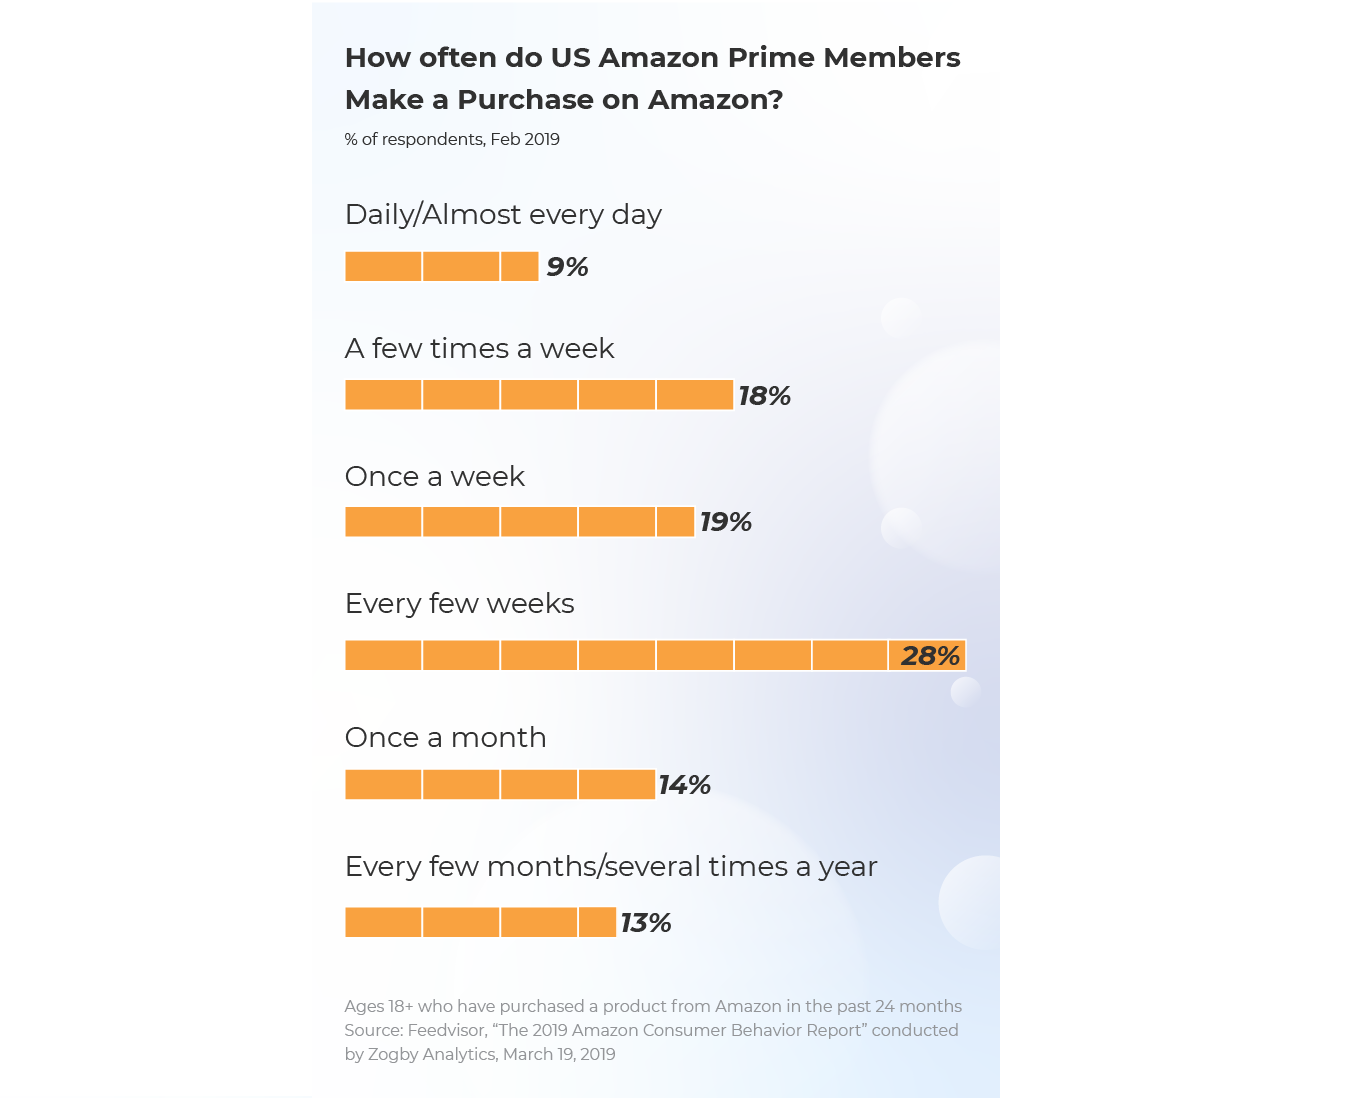 research how often do Amazon make a purchase?